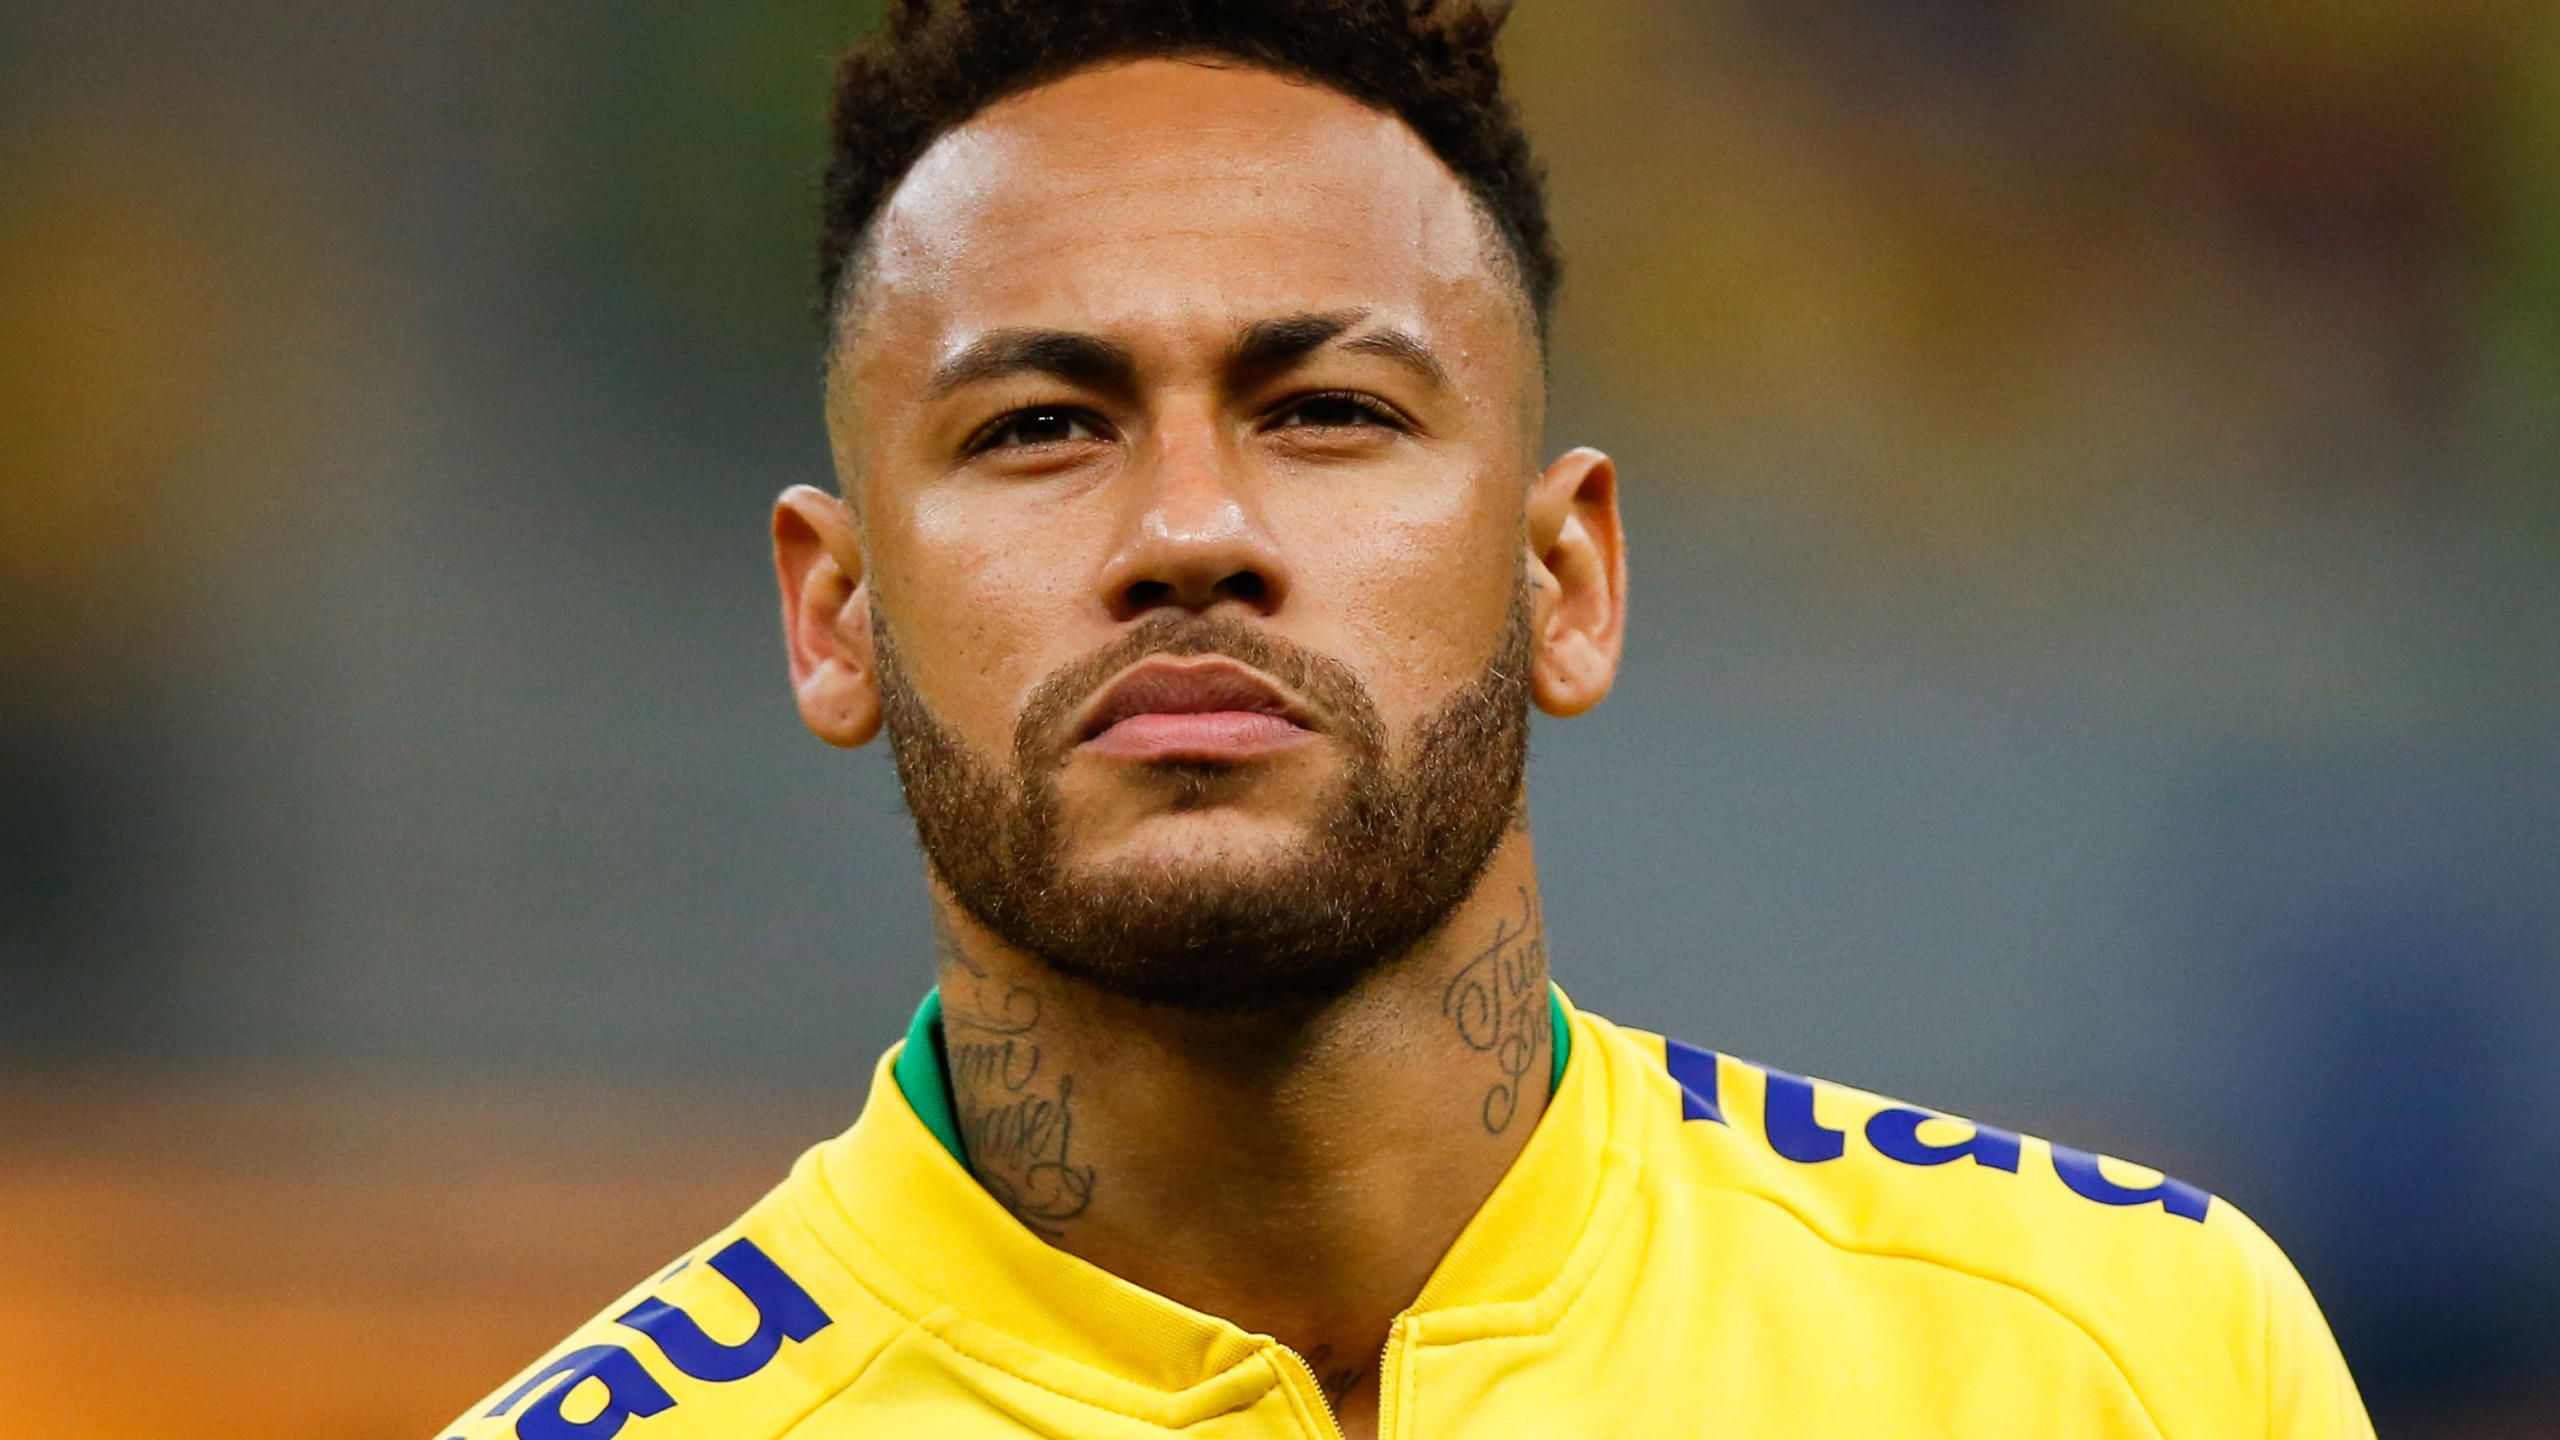 Neymar Jr. of Brazil looks on during the national anthem before the friendly match against Qatar at Mane Garrincha Stadium on June 5, 2019, in Brasilia, Brazil. (Credit: Alexandre Schneider/Getty Images)